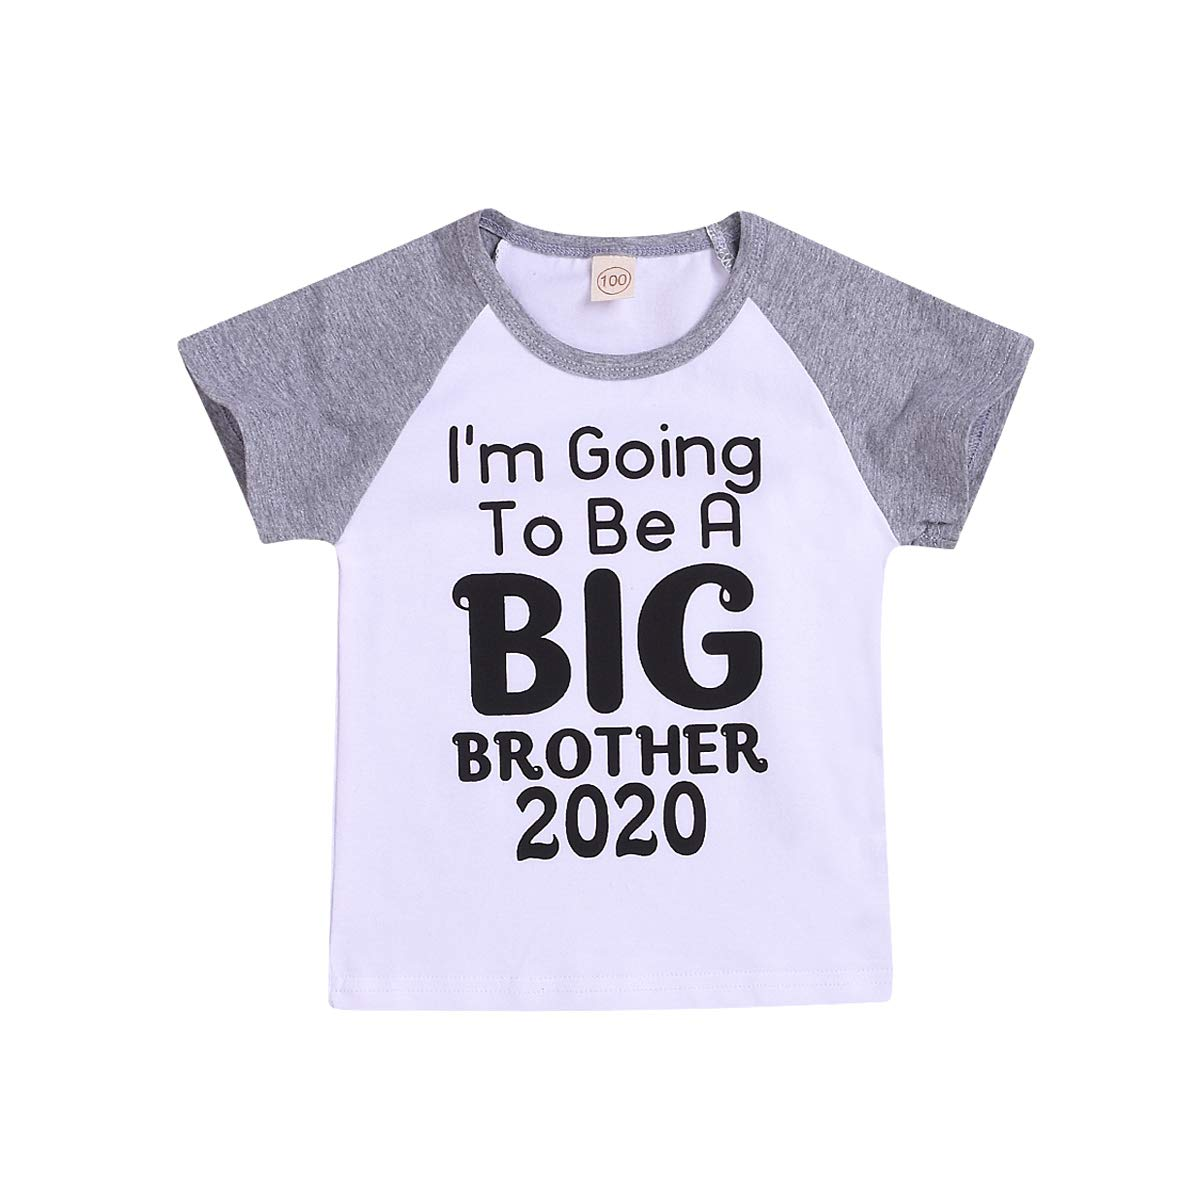 Toddler Kids Baby Boys Tee I'm Going to Be A Big Brother Announcement T-Shirt Short Sleeve Shirt Tops